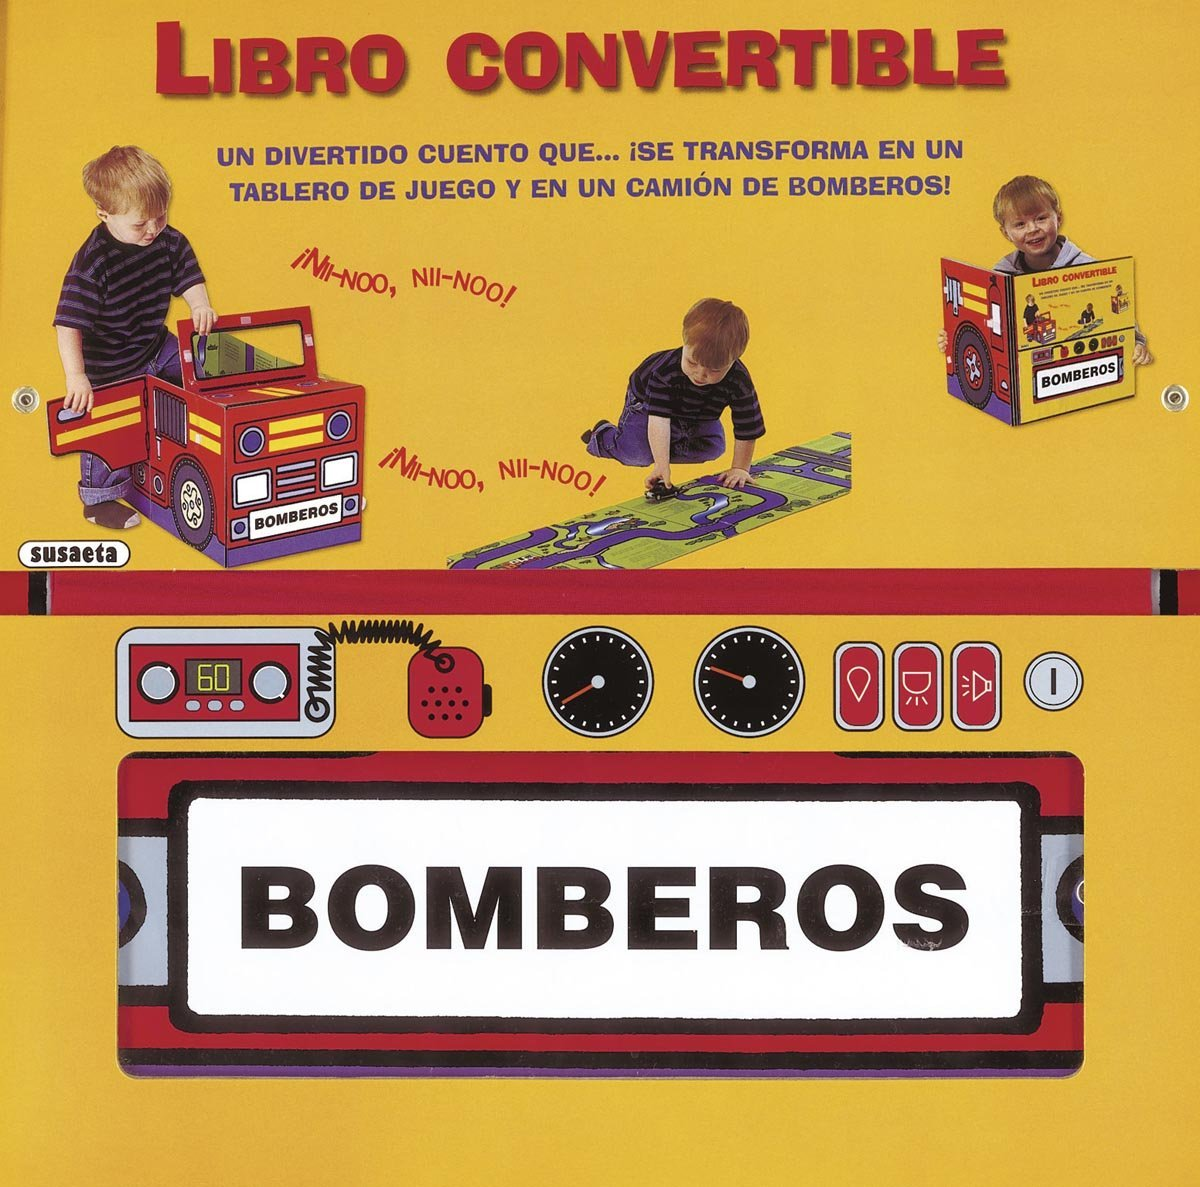 Bomberos / Firefighter (Libro convertible / Convertible book) (Spanish Edition) (Spanish) Paperback – Illustrated, June 30, 2012